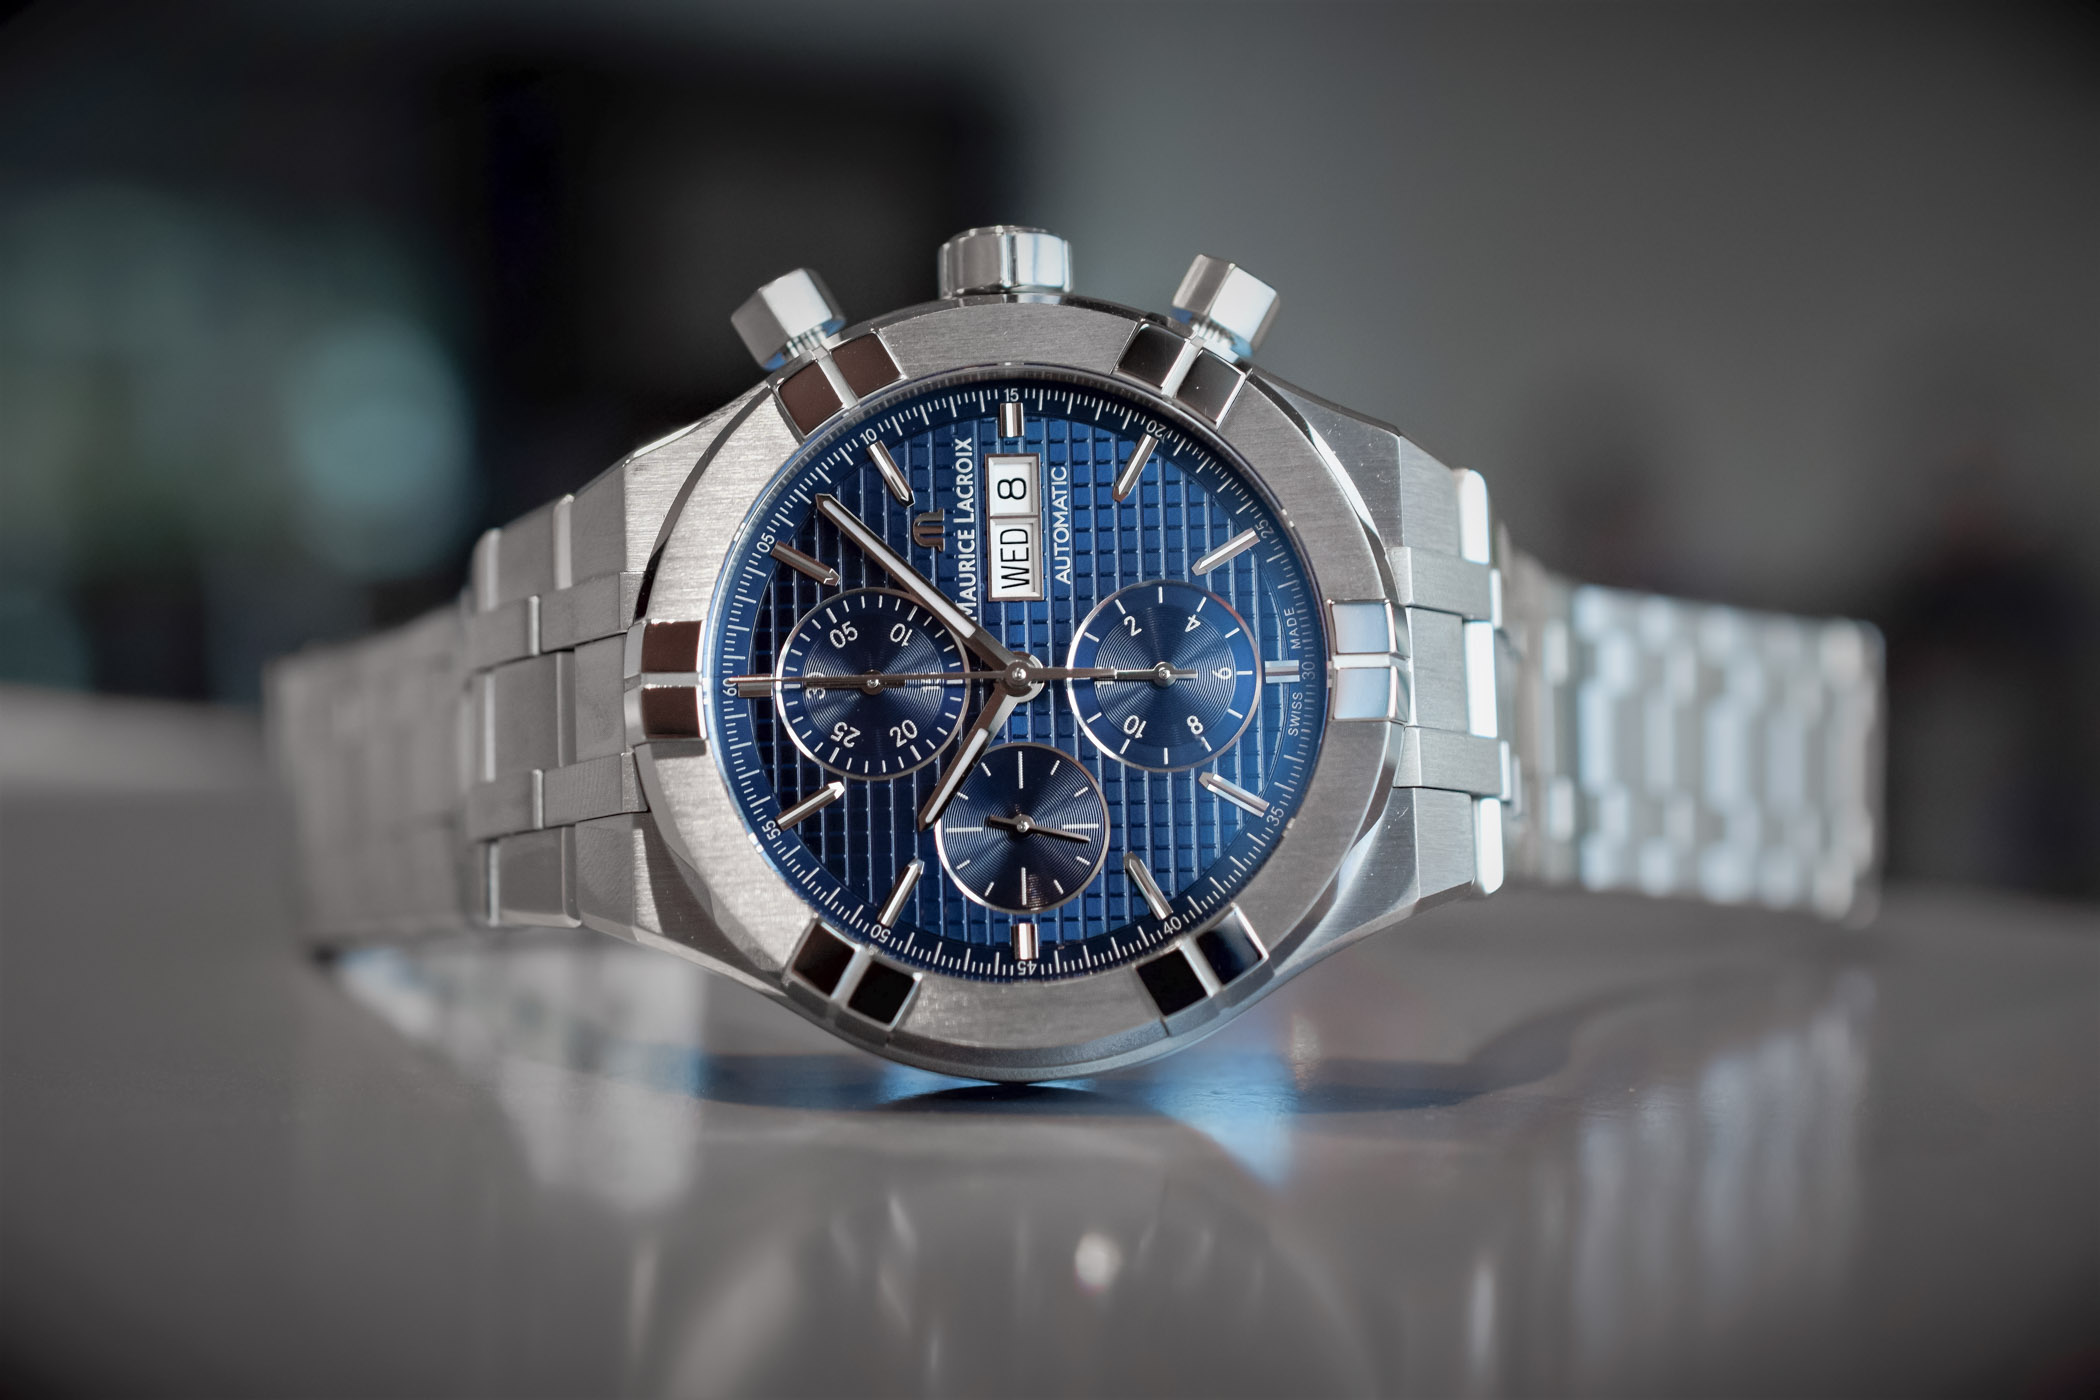 Maurice Lacroix Aikon Automatic chronograph - Baselworld 2018